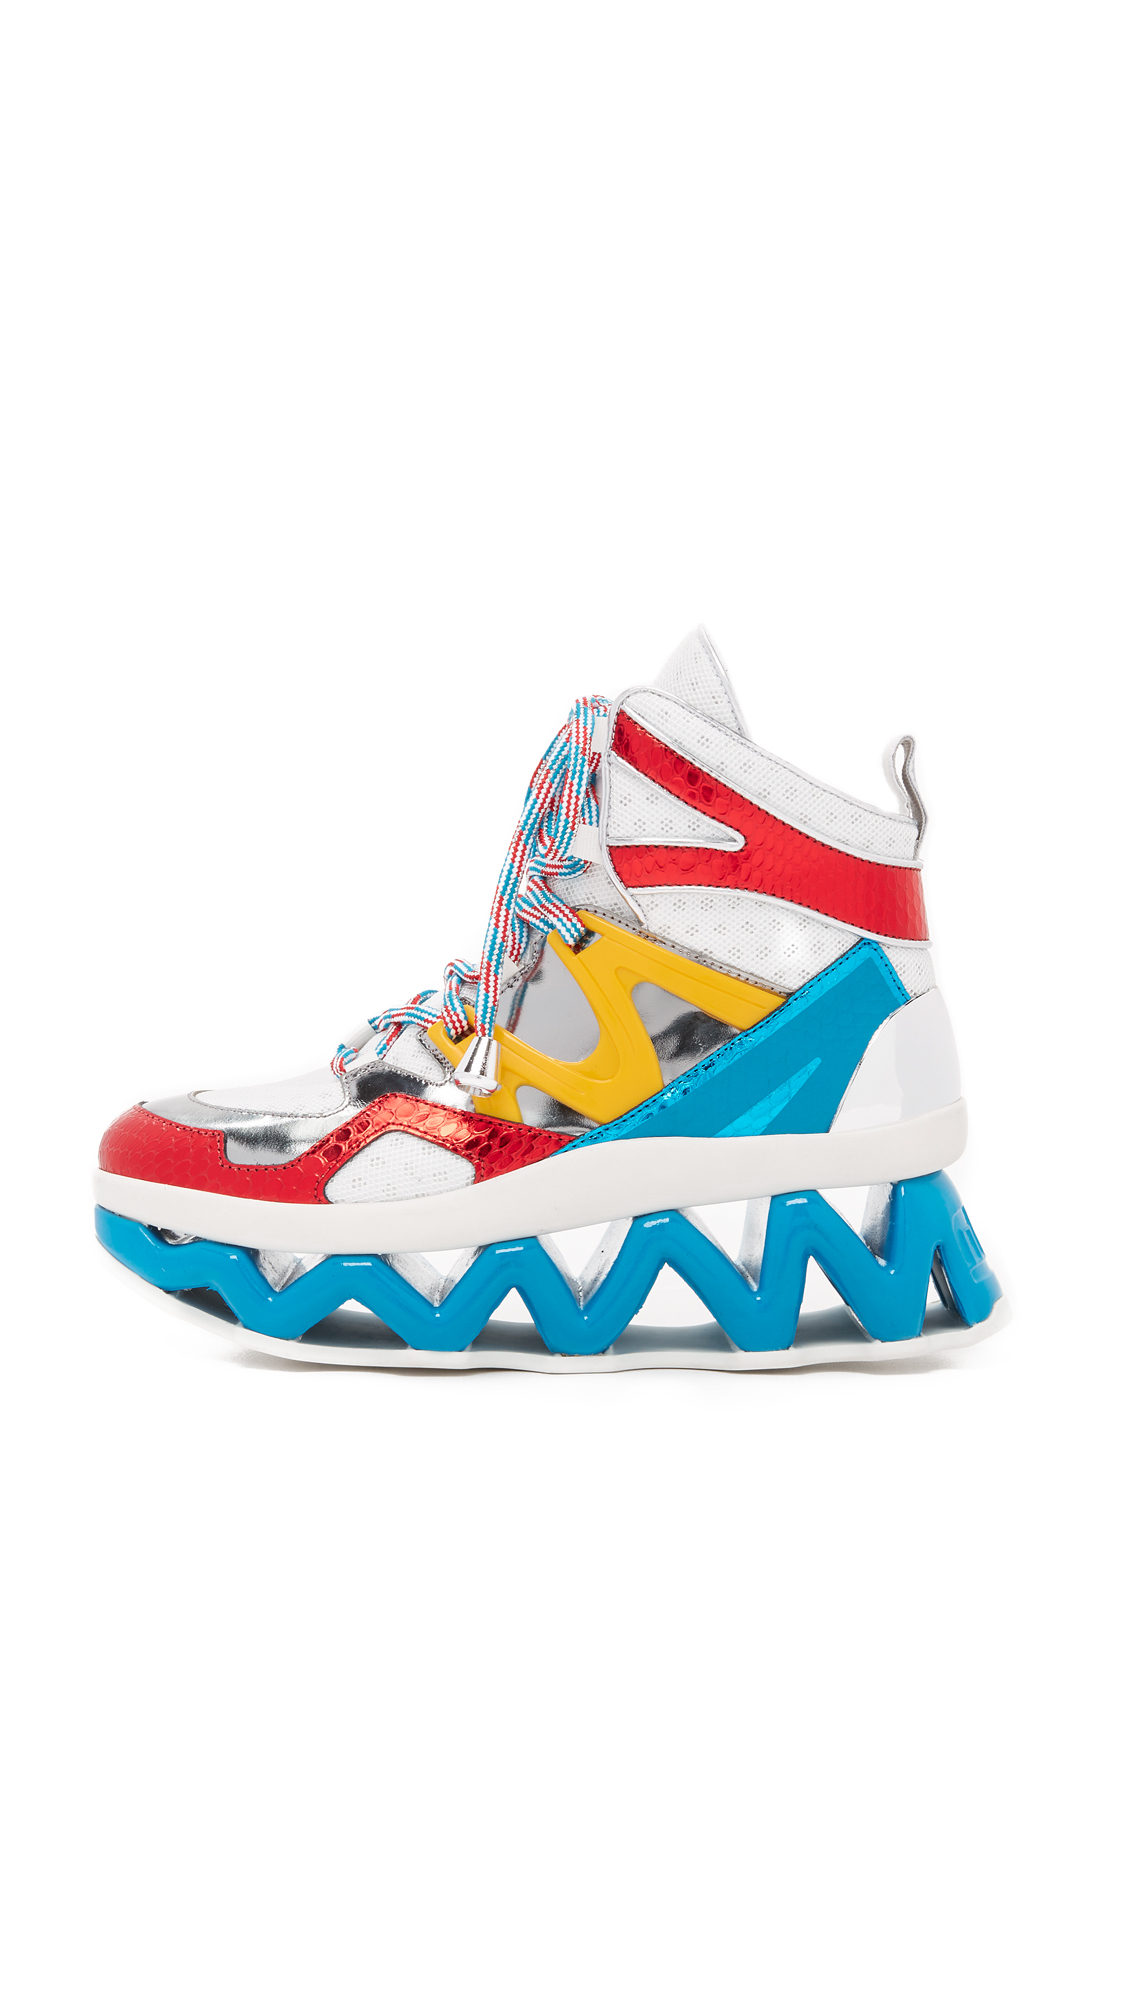 b90fce8cbfd Lyst - Marc By Marc Jacobs Ninja Wave High Top Sneakers in Red